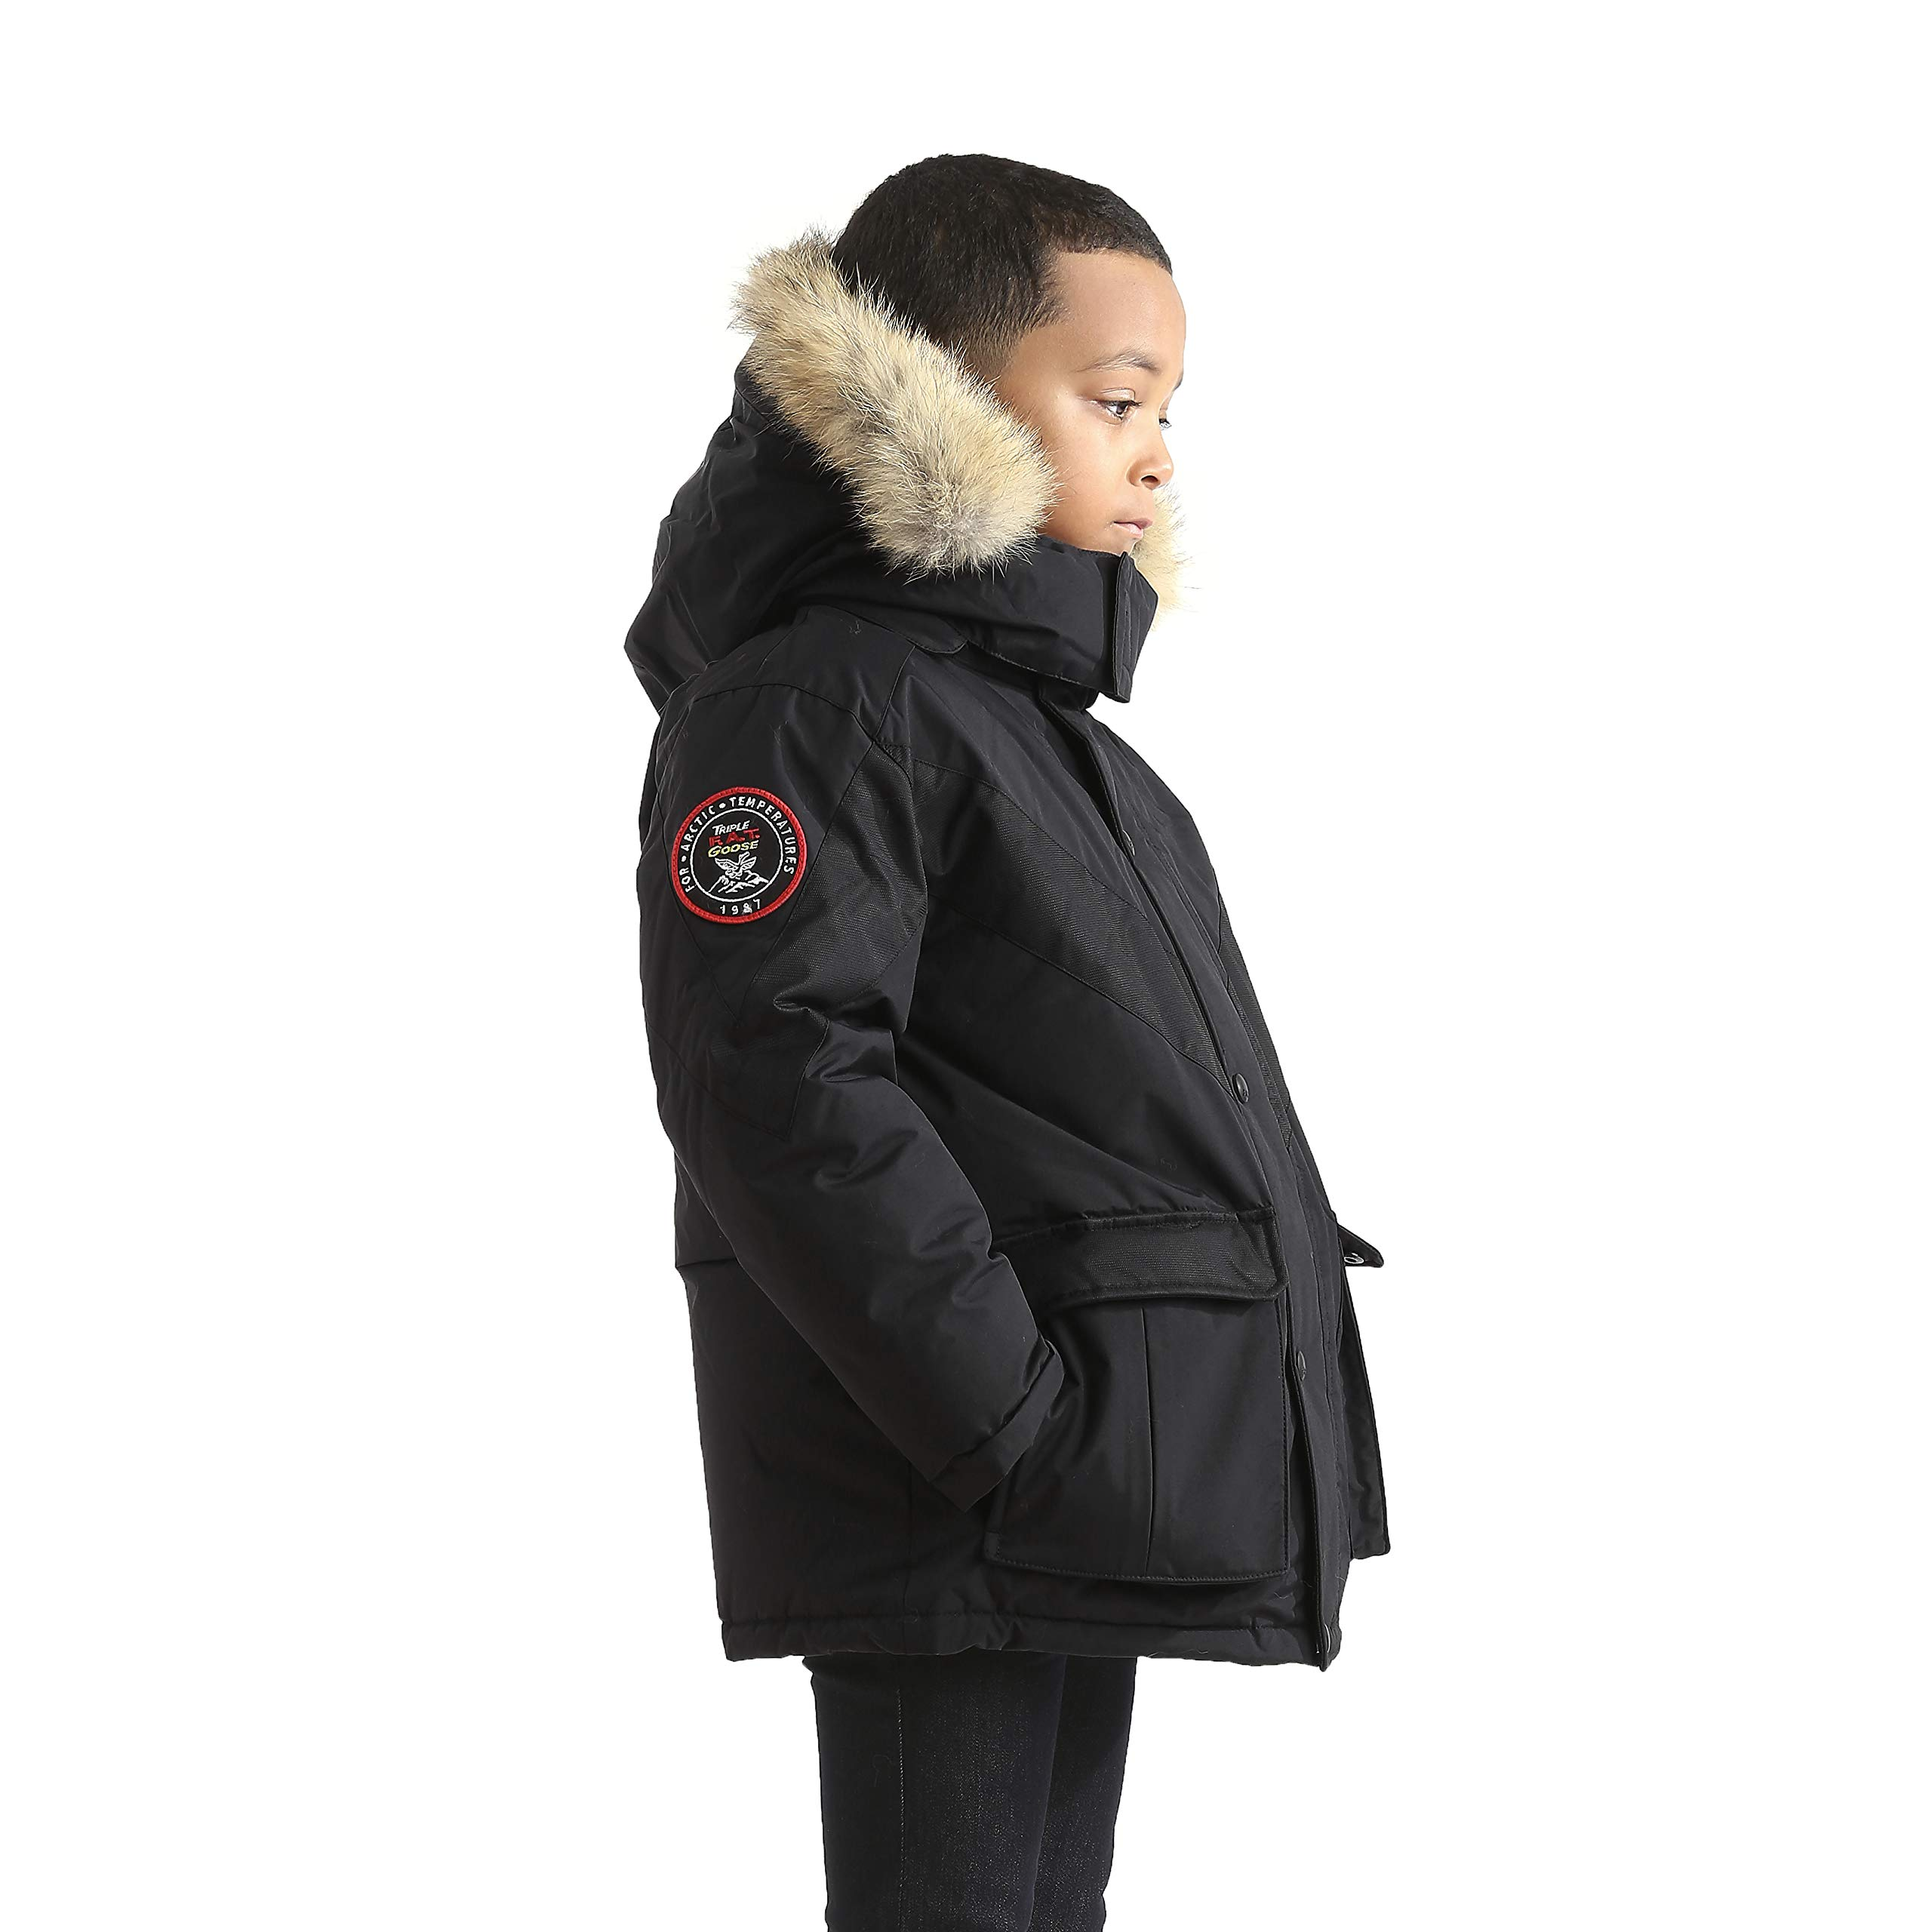 Triple F.A.T. Goose Hesselberg Boys Hooded Goose Down Arctic Parka with Real Coyote Fur (7, Black) by Triple F.A.T. Goose (Image #2)